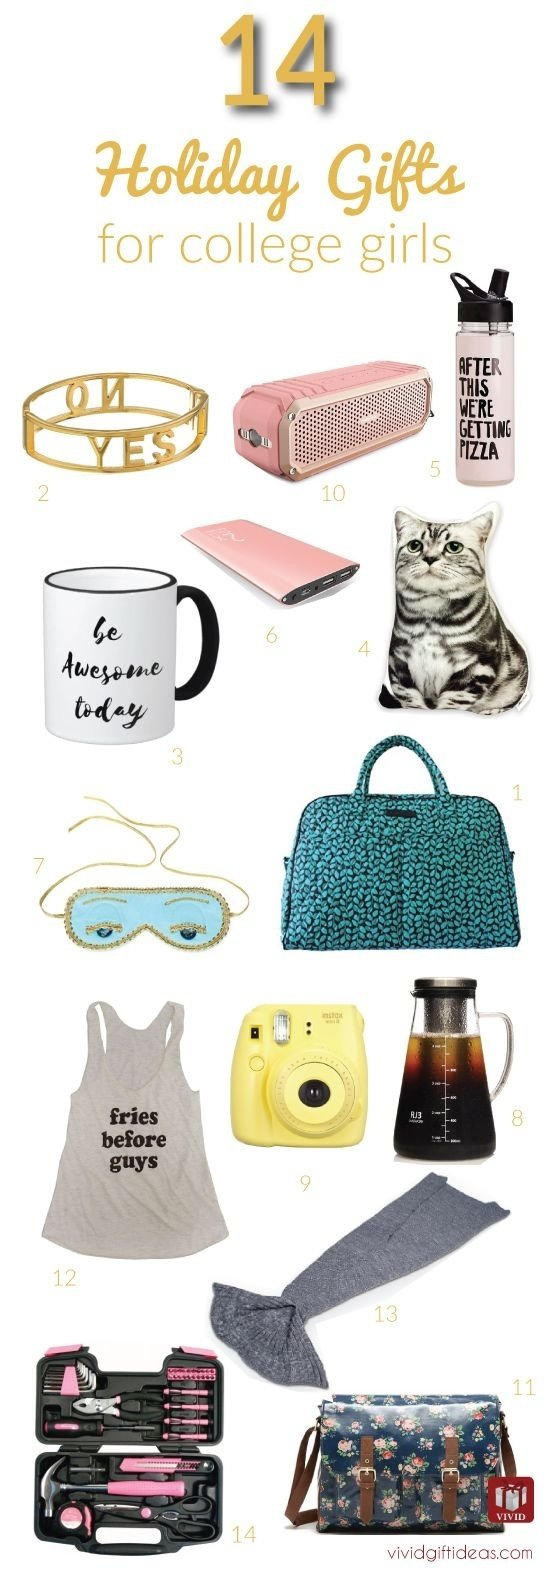 10 Attractive Gift Ideas For College Students 14 great christmas gift ideas for college girls college girls 8